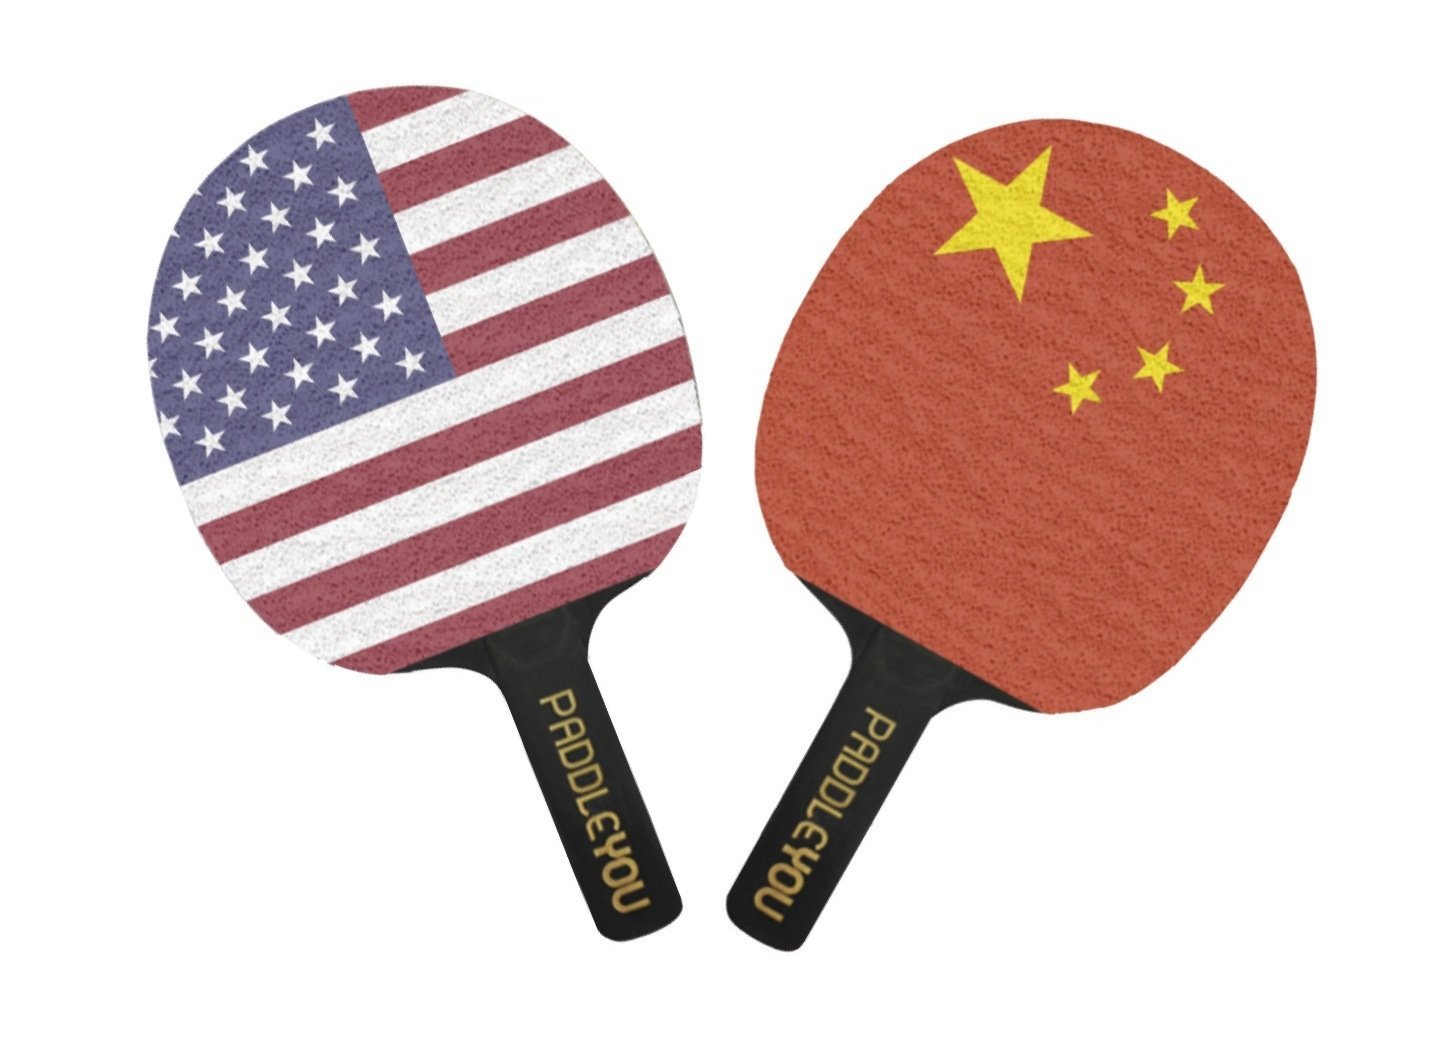 Ping Pong Diplomacy 2 Player Paddle Set (2 Game Improving Table Tennis Rackets)